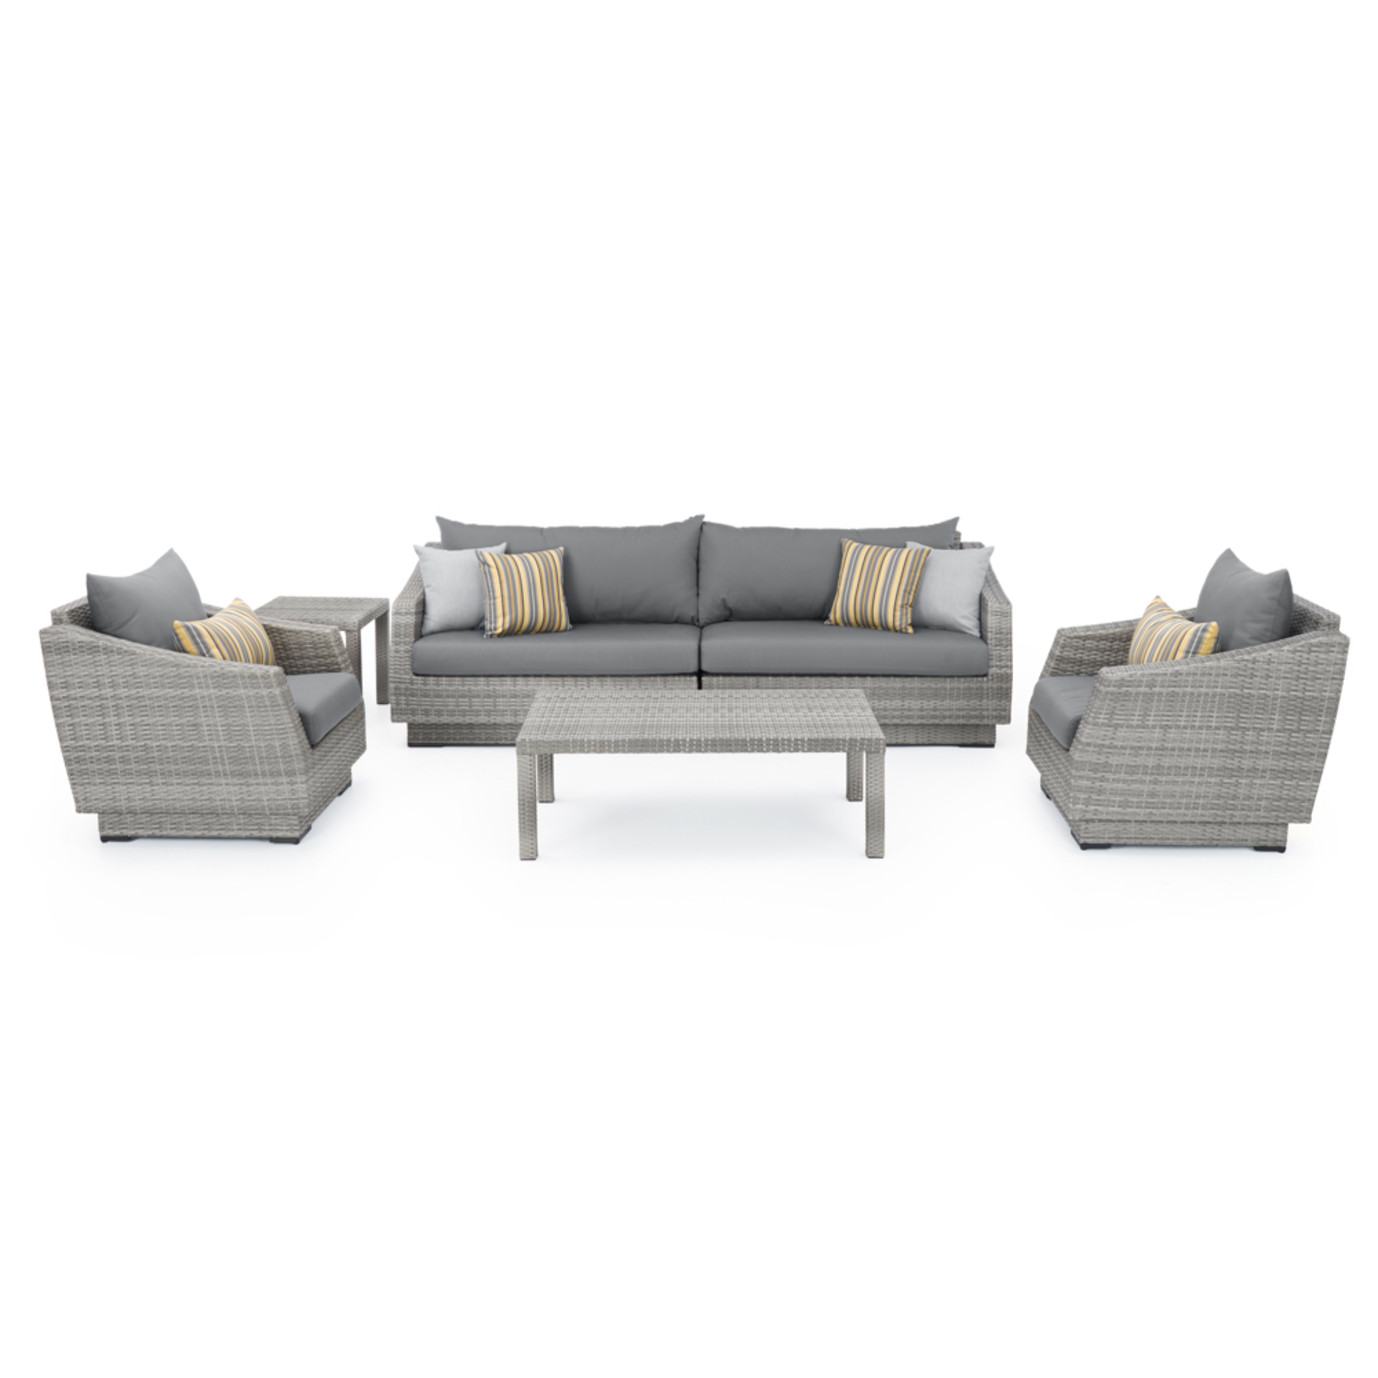 Cannes™ 6pc Sofa & Club Chair Set - Charcoal Gray